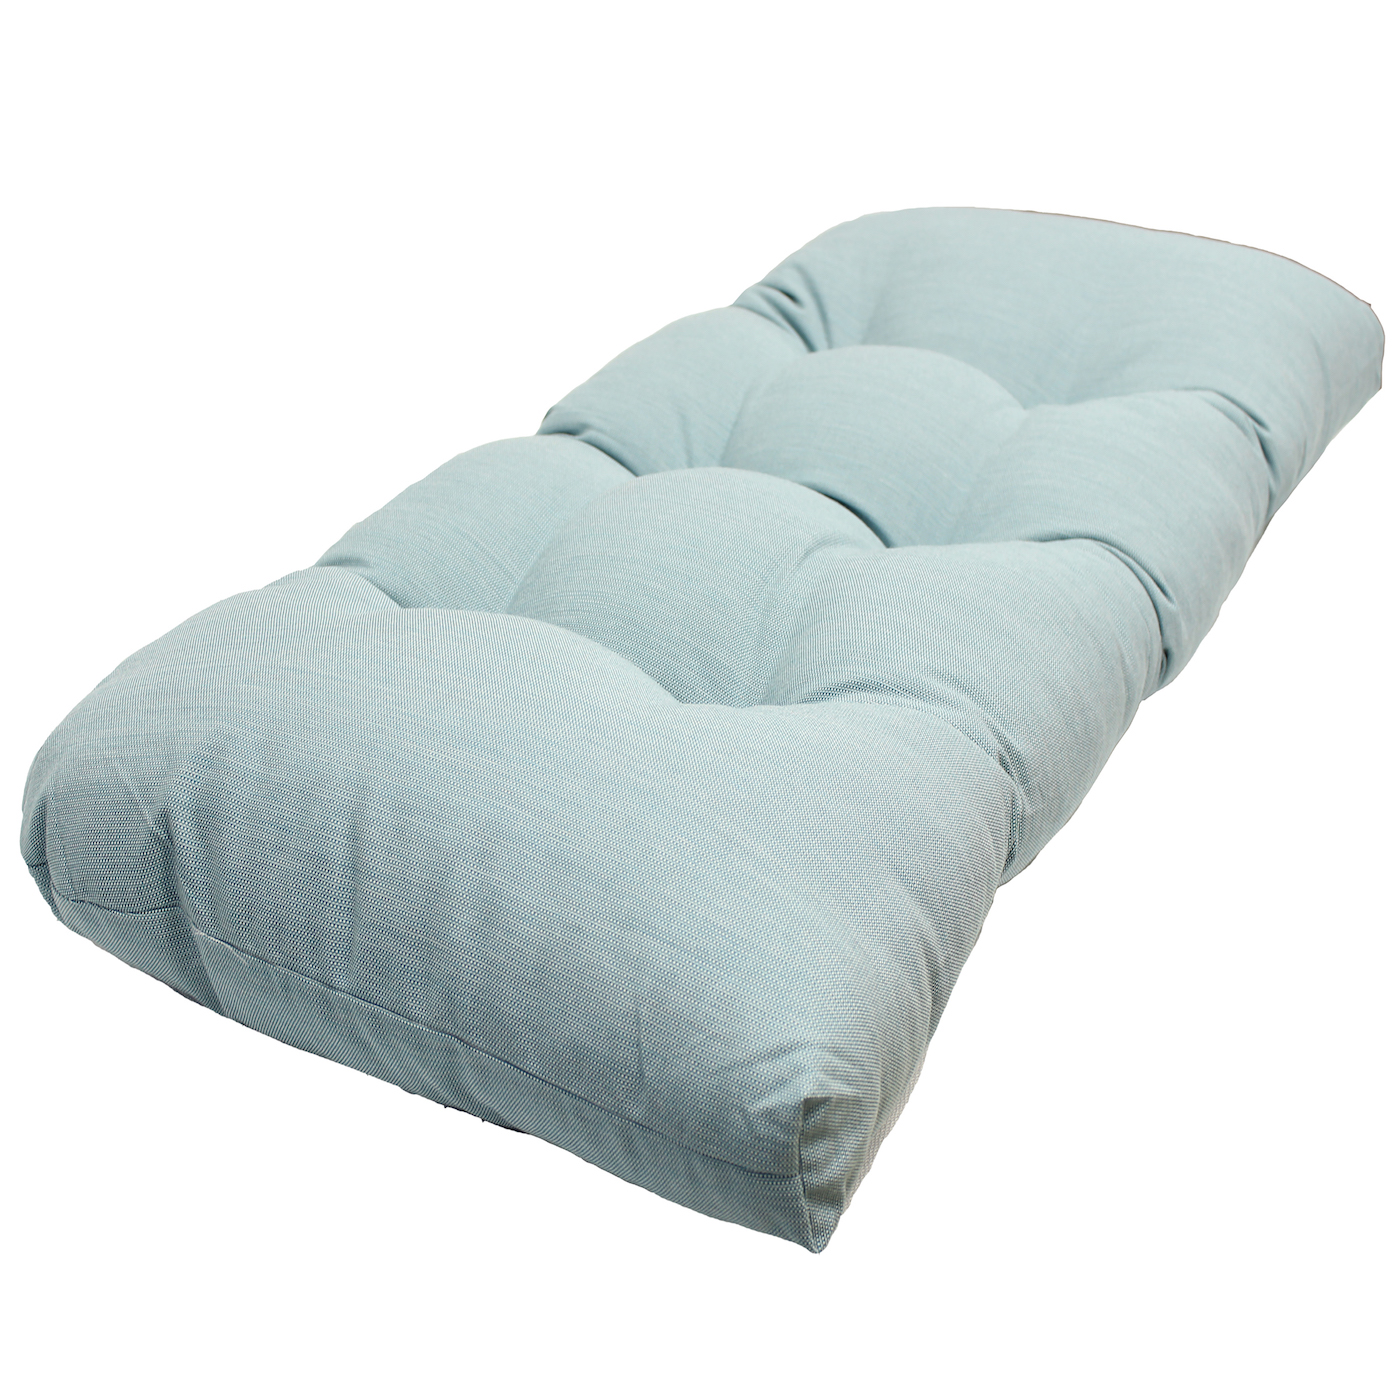 Better Homes and Gardens Spa Tufted Wicker Settee Cushion